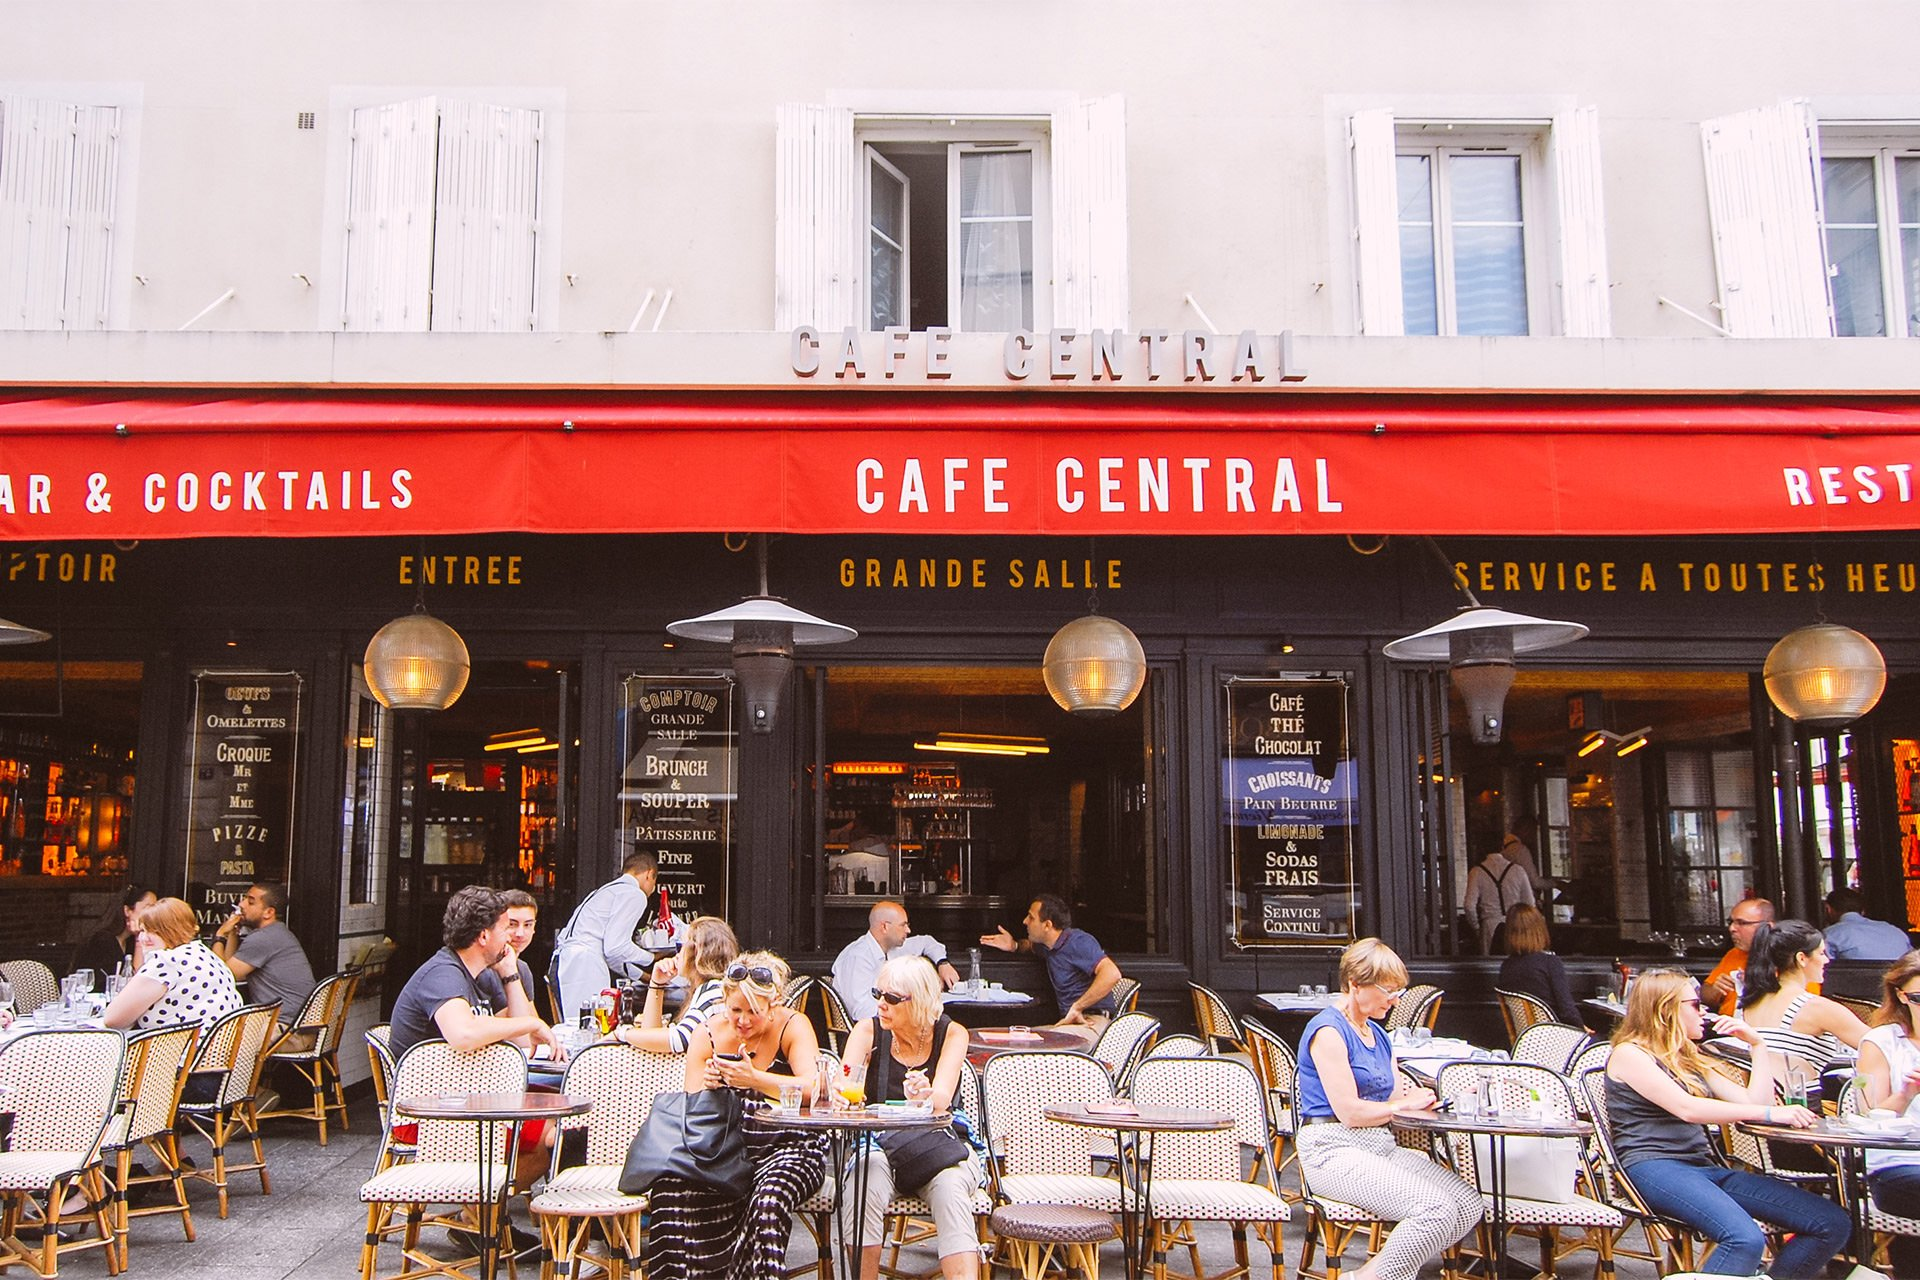 Grab an espresso or glass of wine with the locals at a cafe